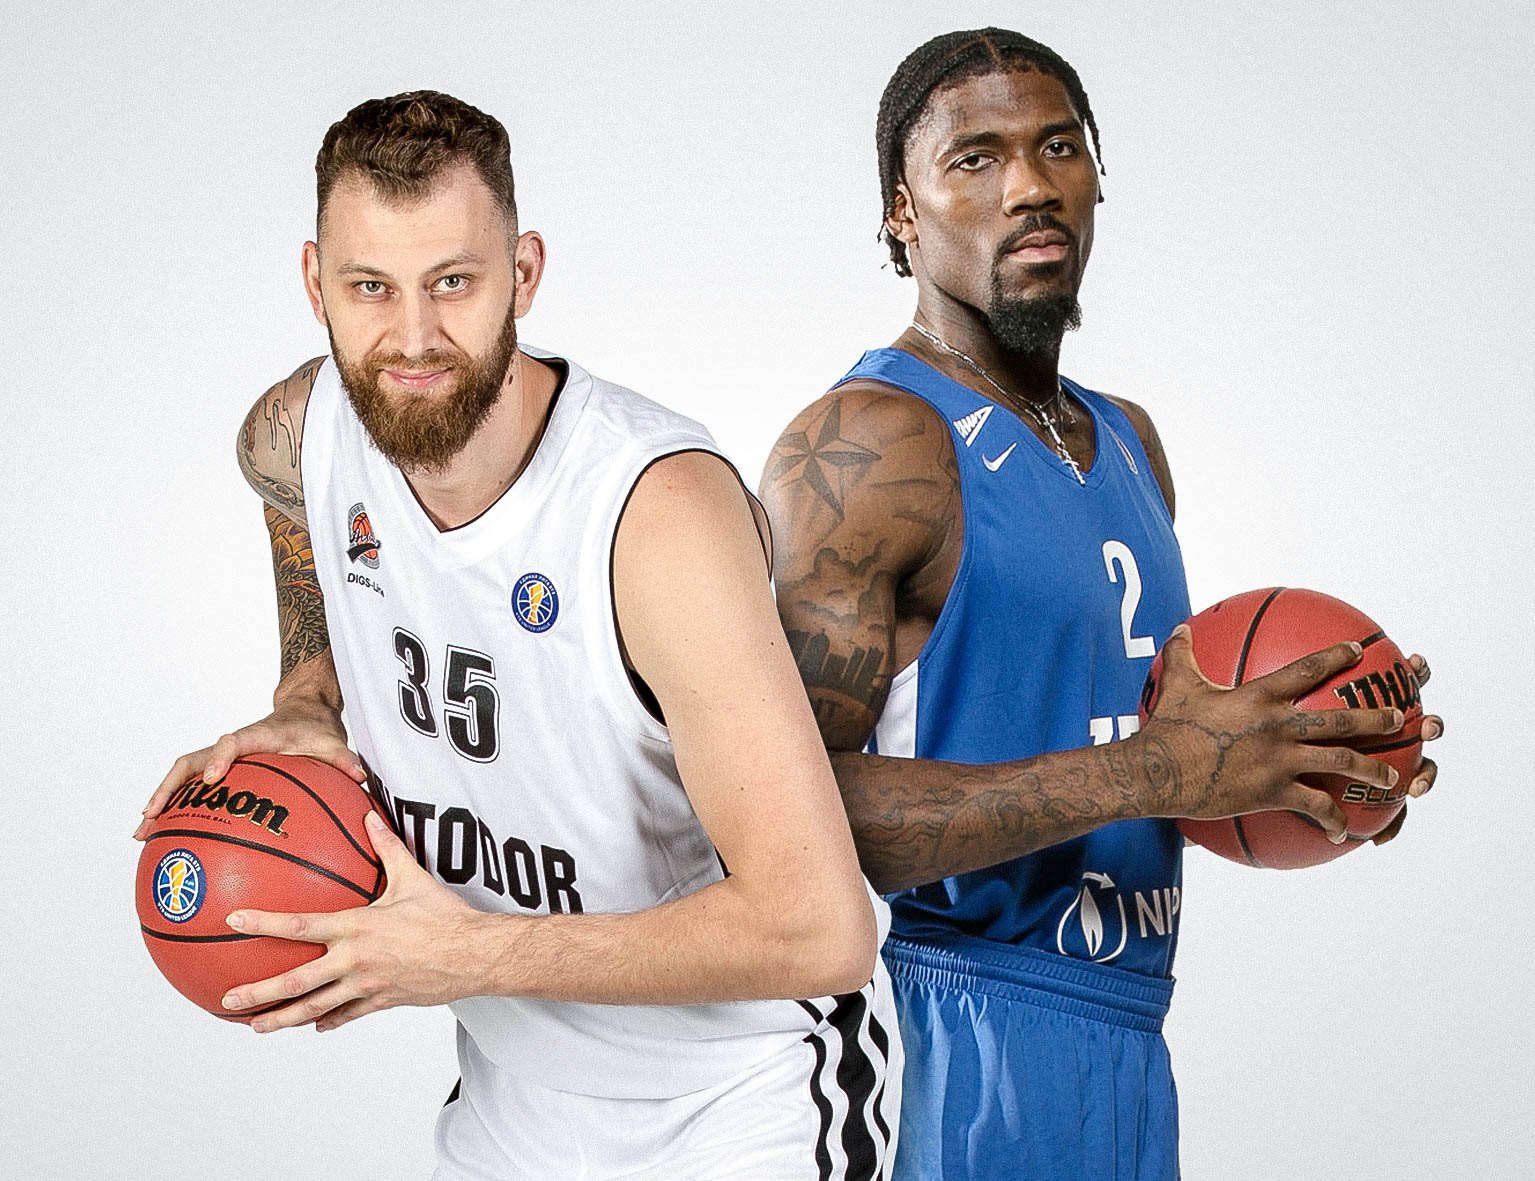 Game Of The Week: Avtodor vs. Zenit